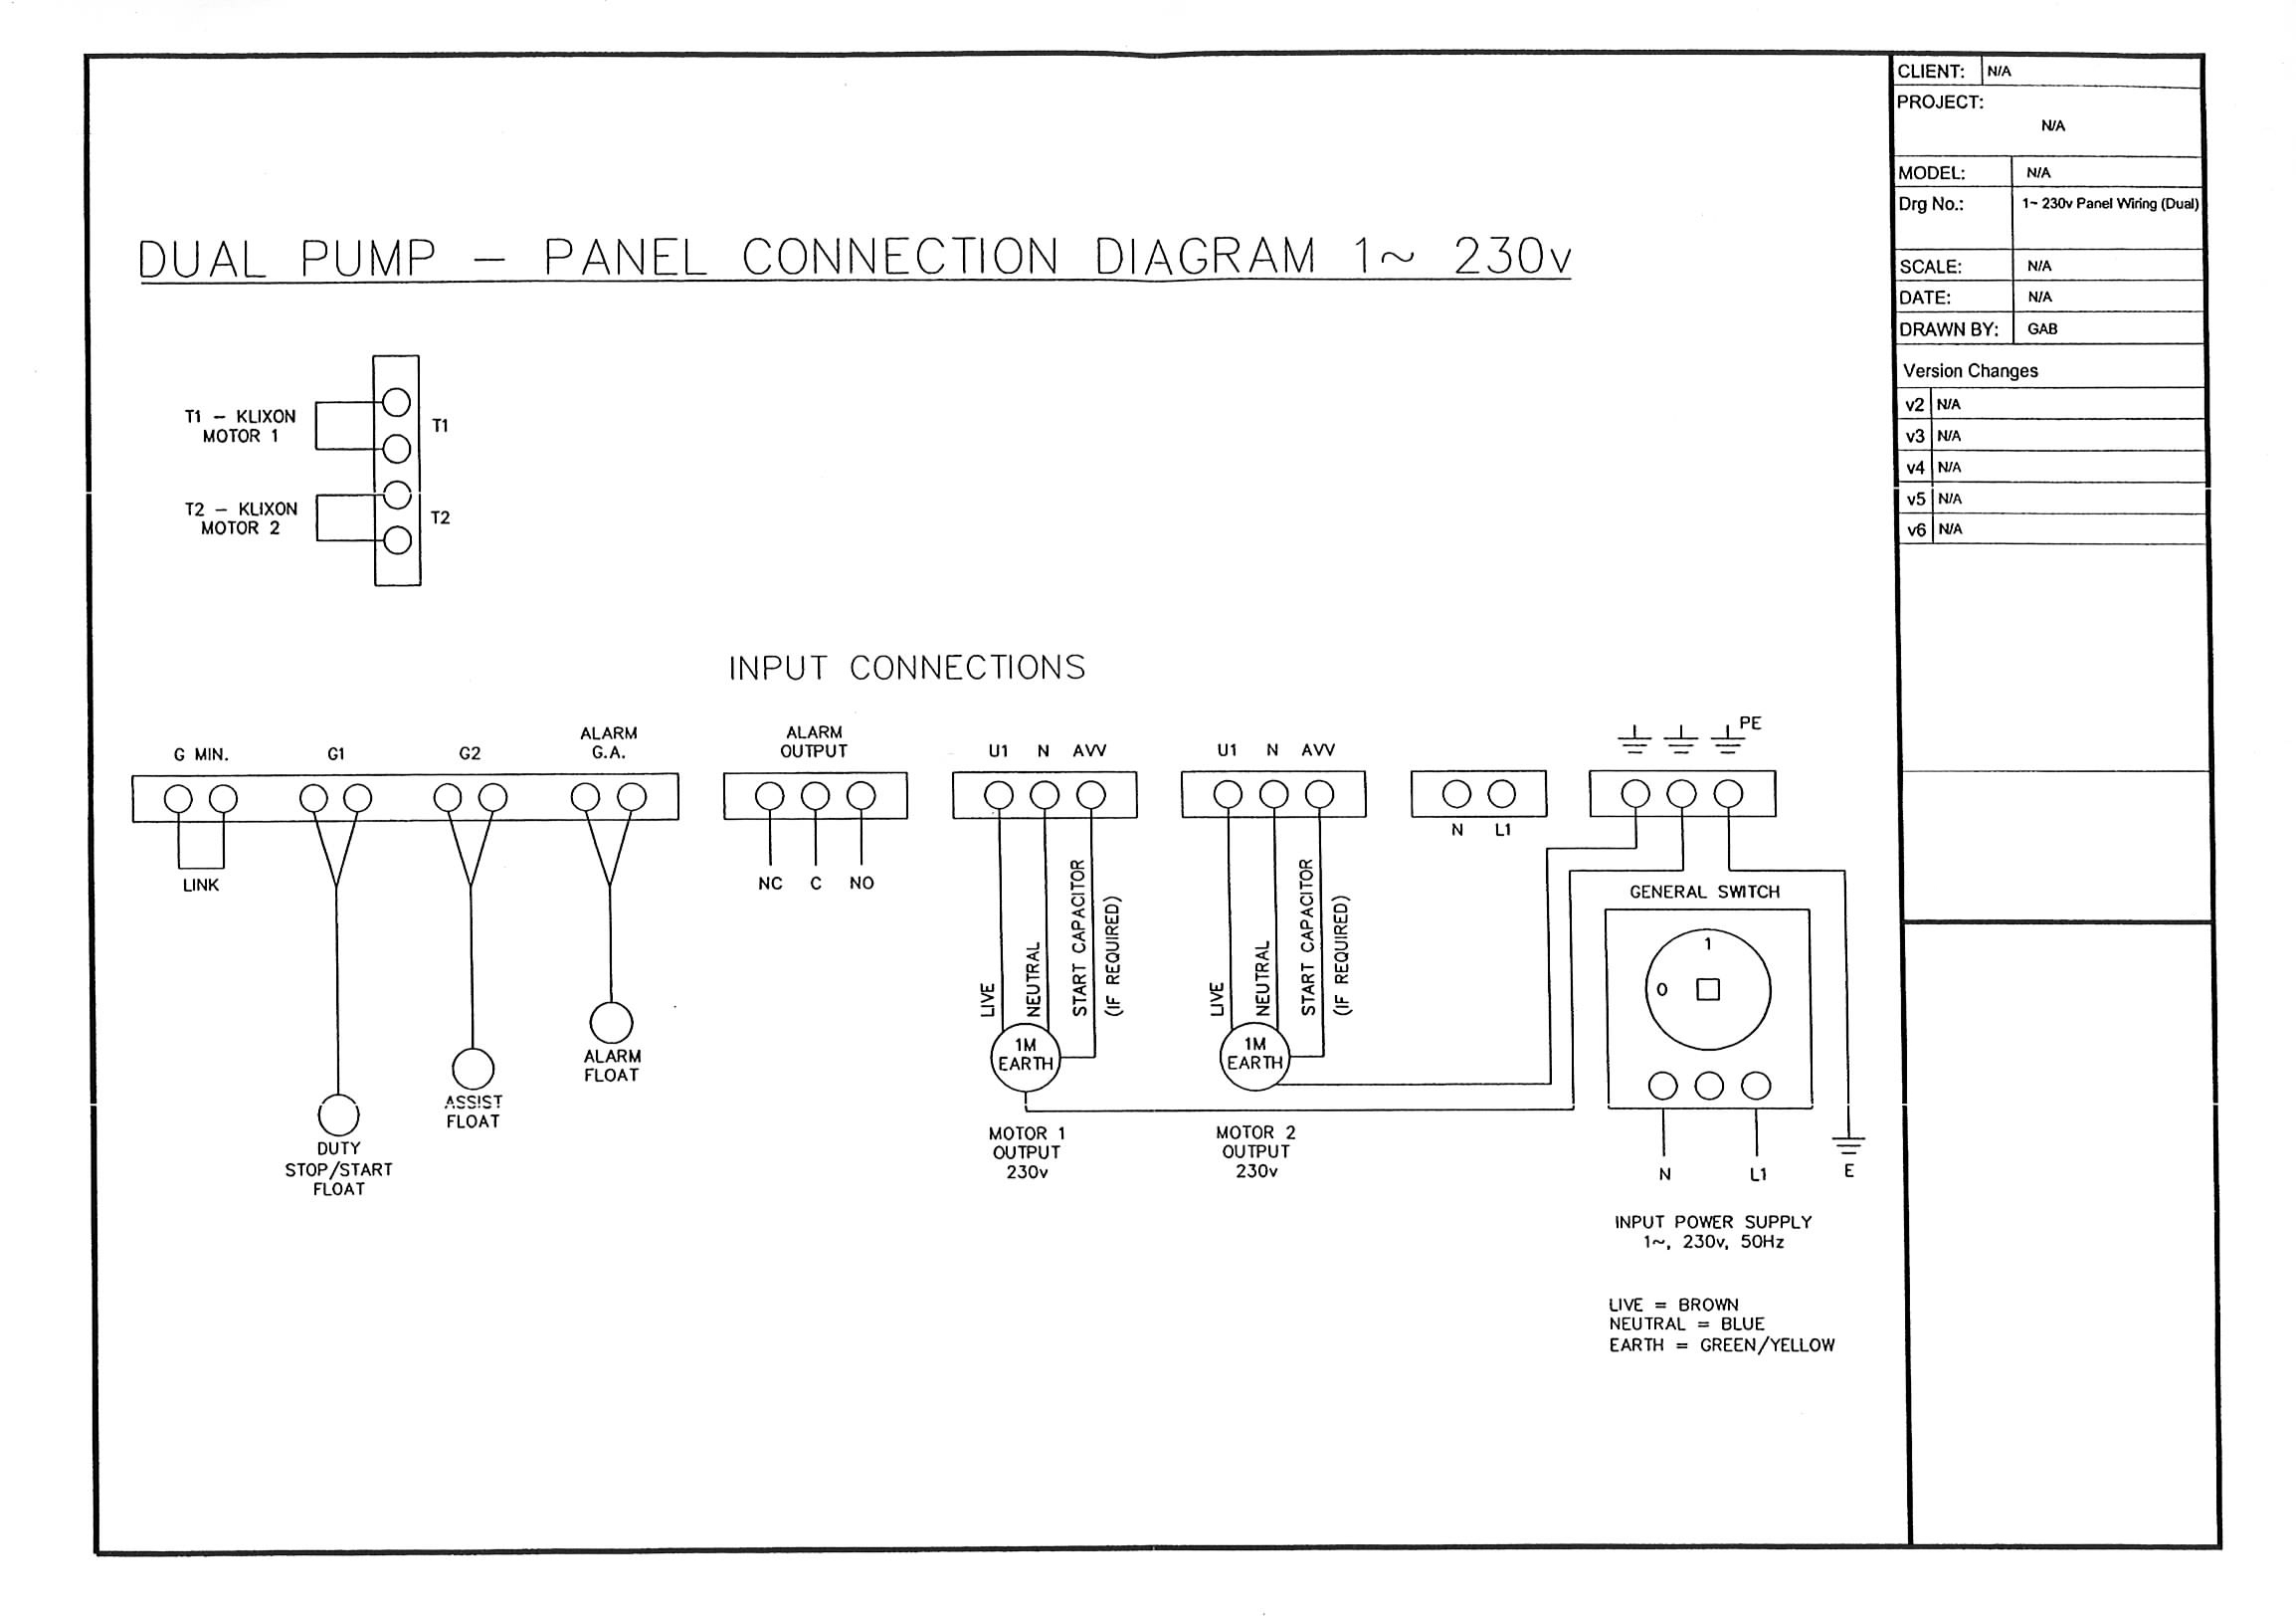 fire pump control panel wiring diagram metra harness septic alarm get free image